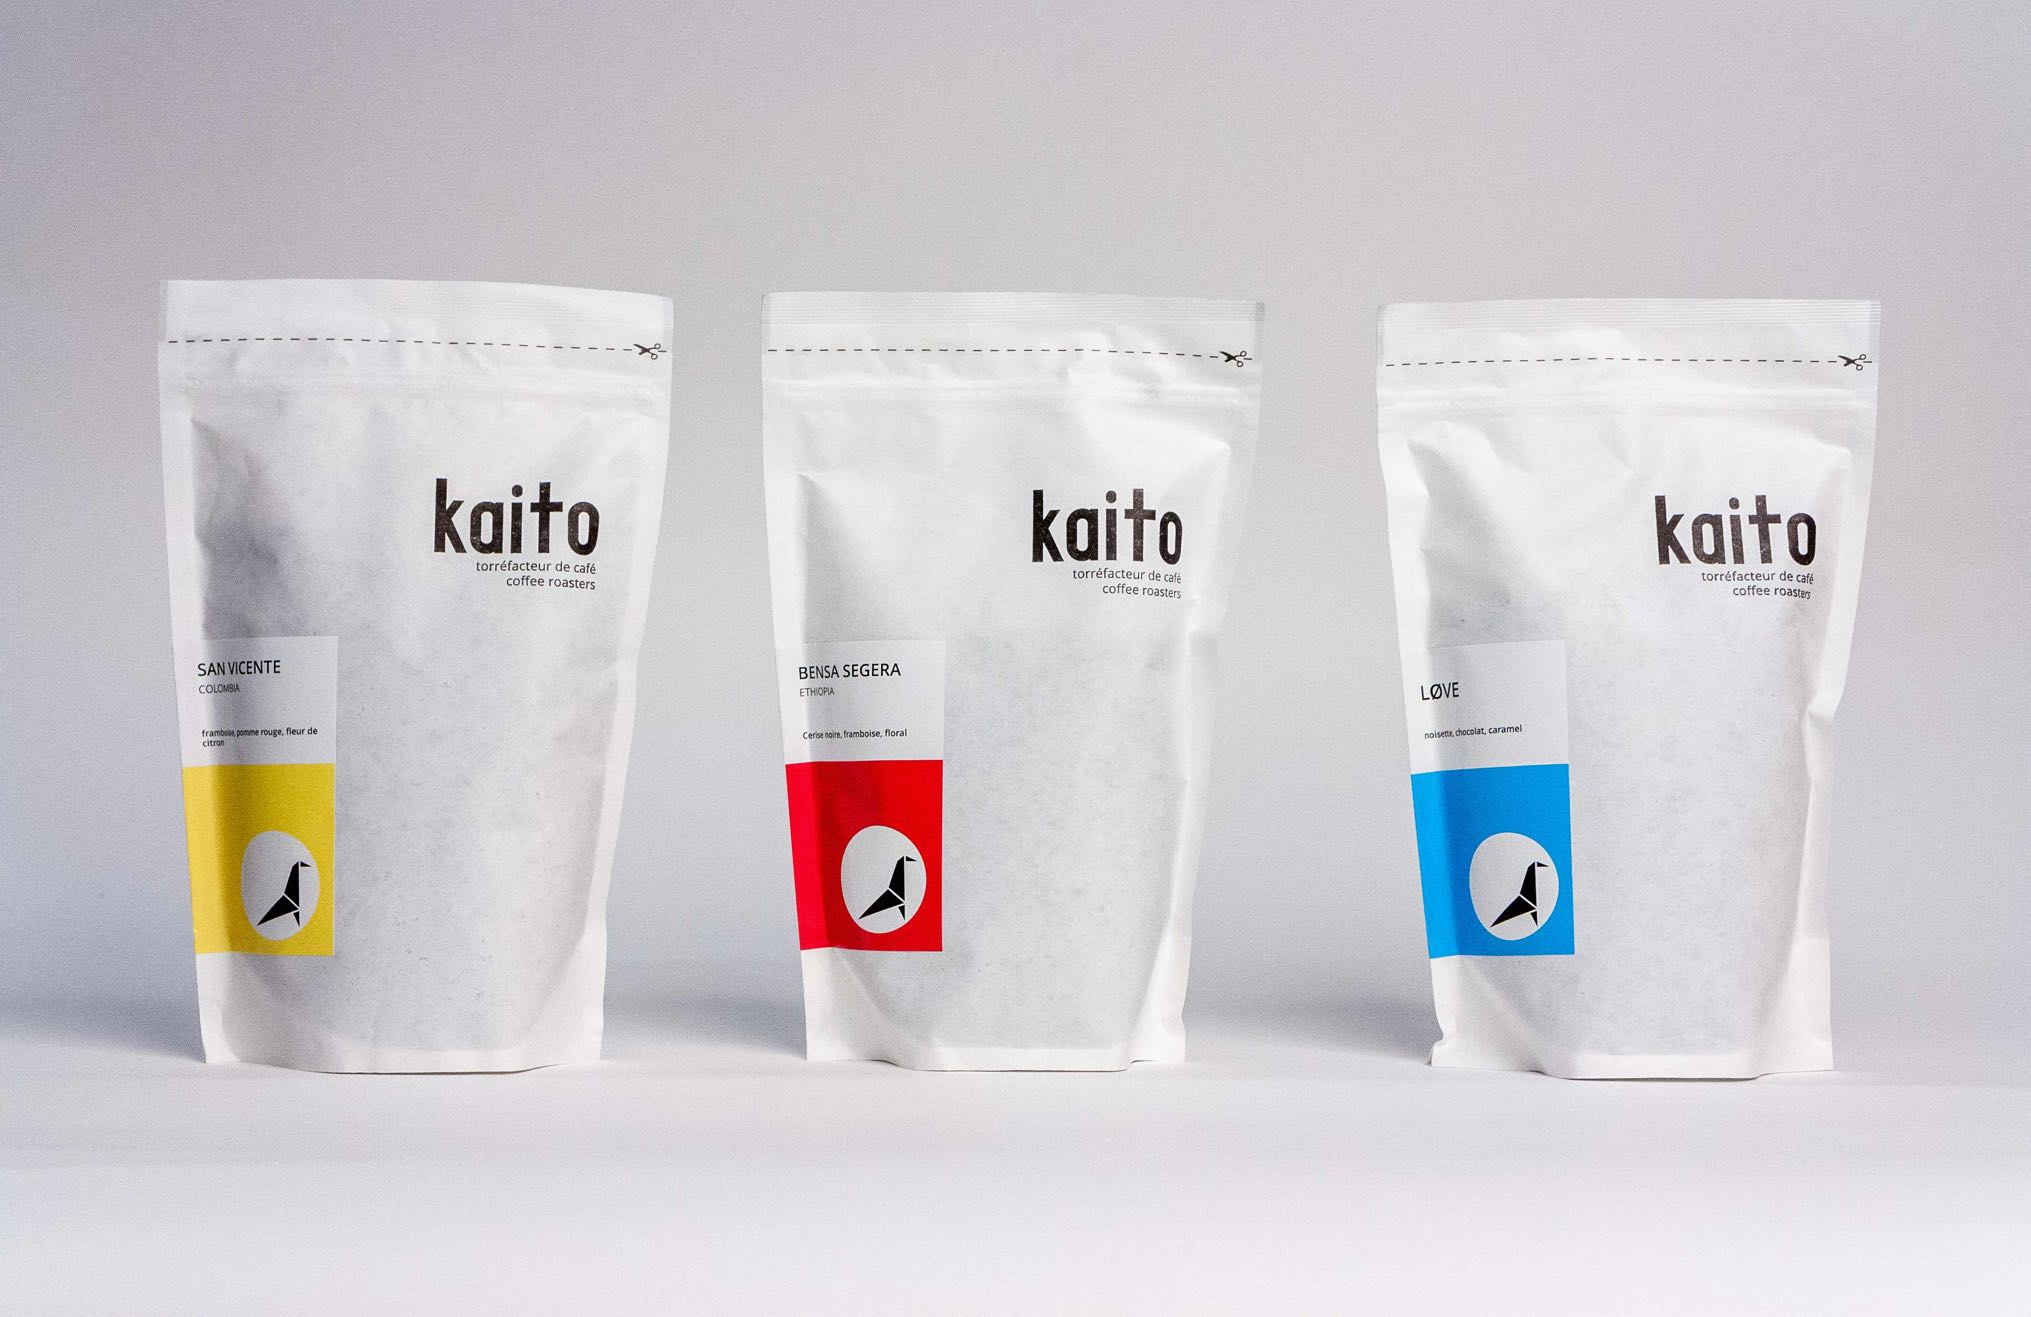 Kaito coffee logo applied to packaging in red, yellow and blue components of the brand system — by Yagnyuk.